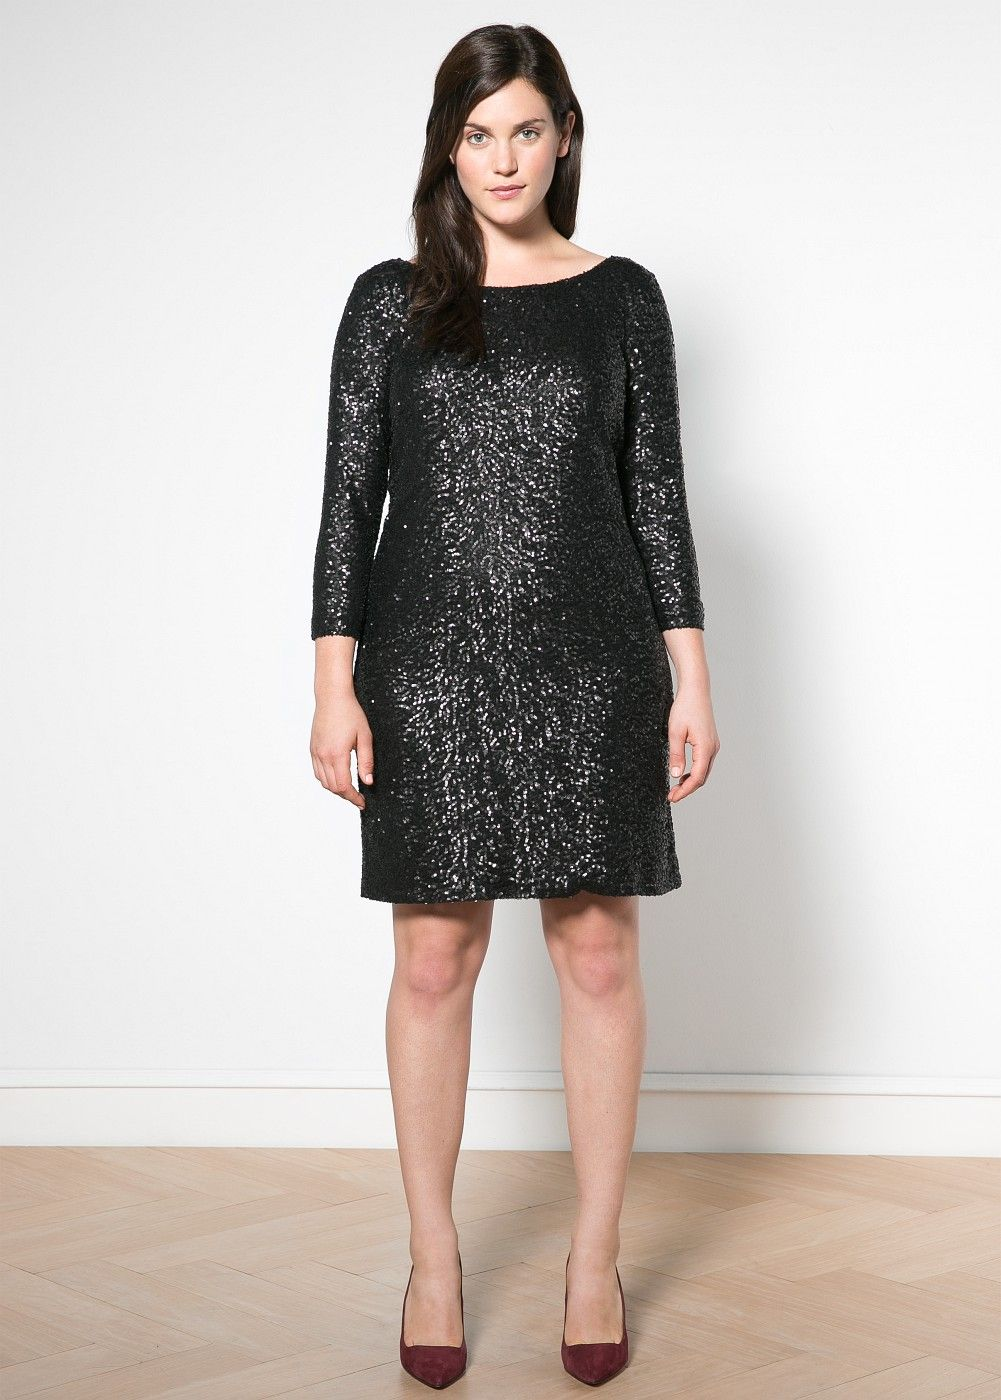 Sequined dress Plus sizes